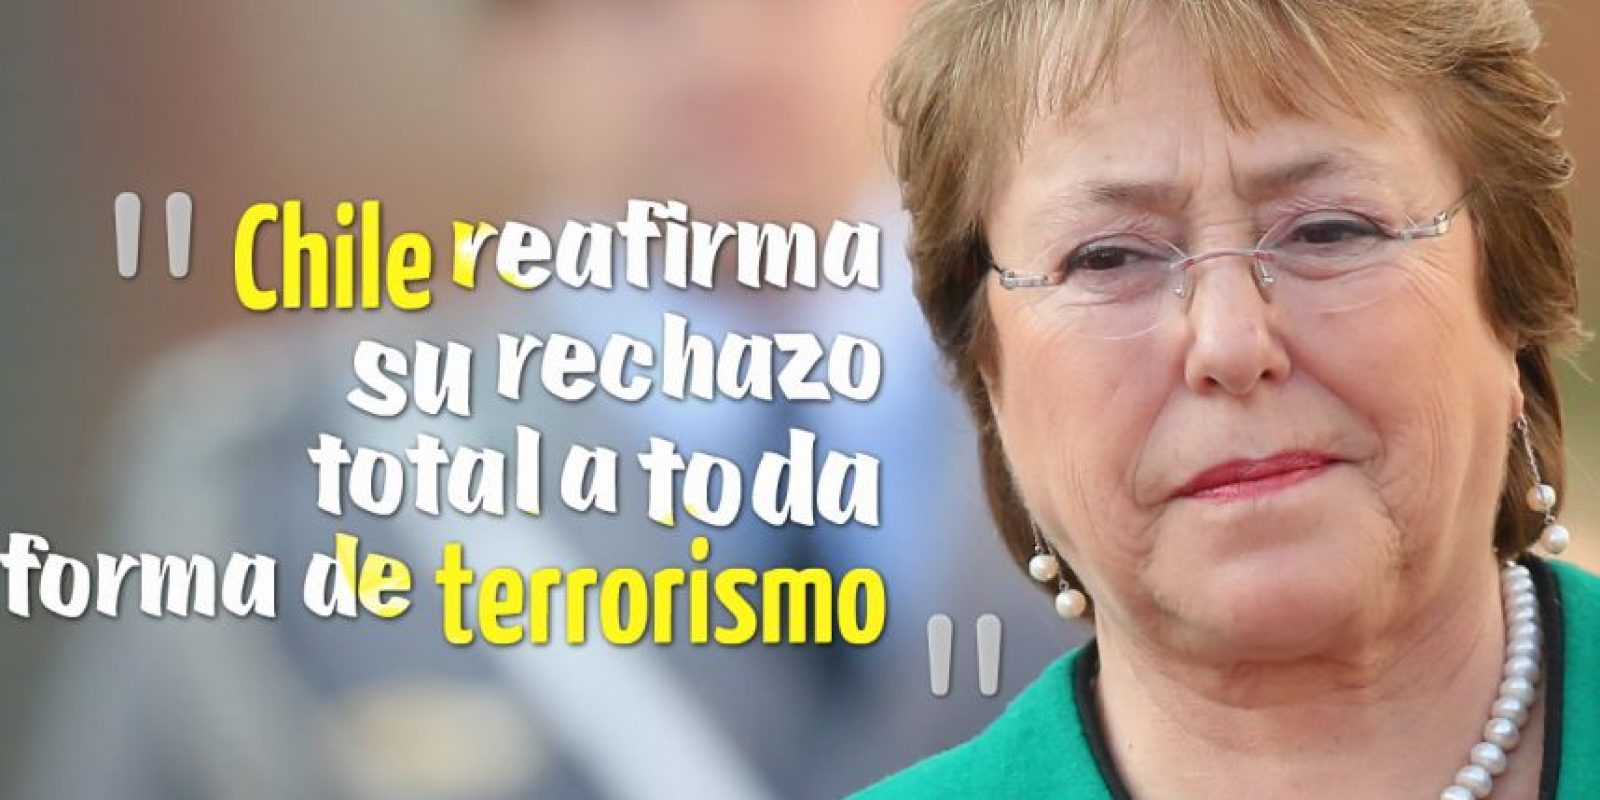 MICHELE BACHELET, Presidenta de Chile. Foto: Getty Images